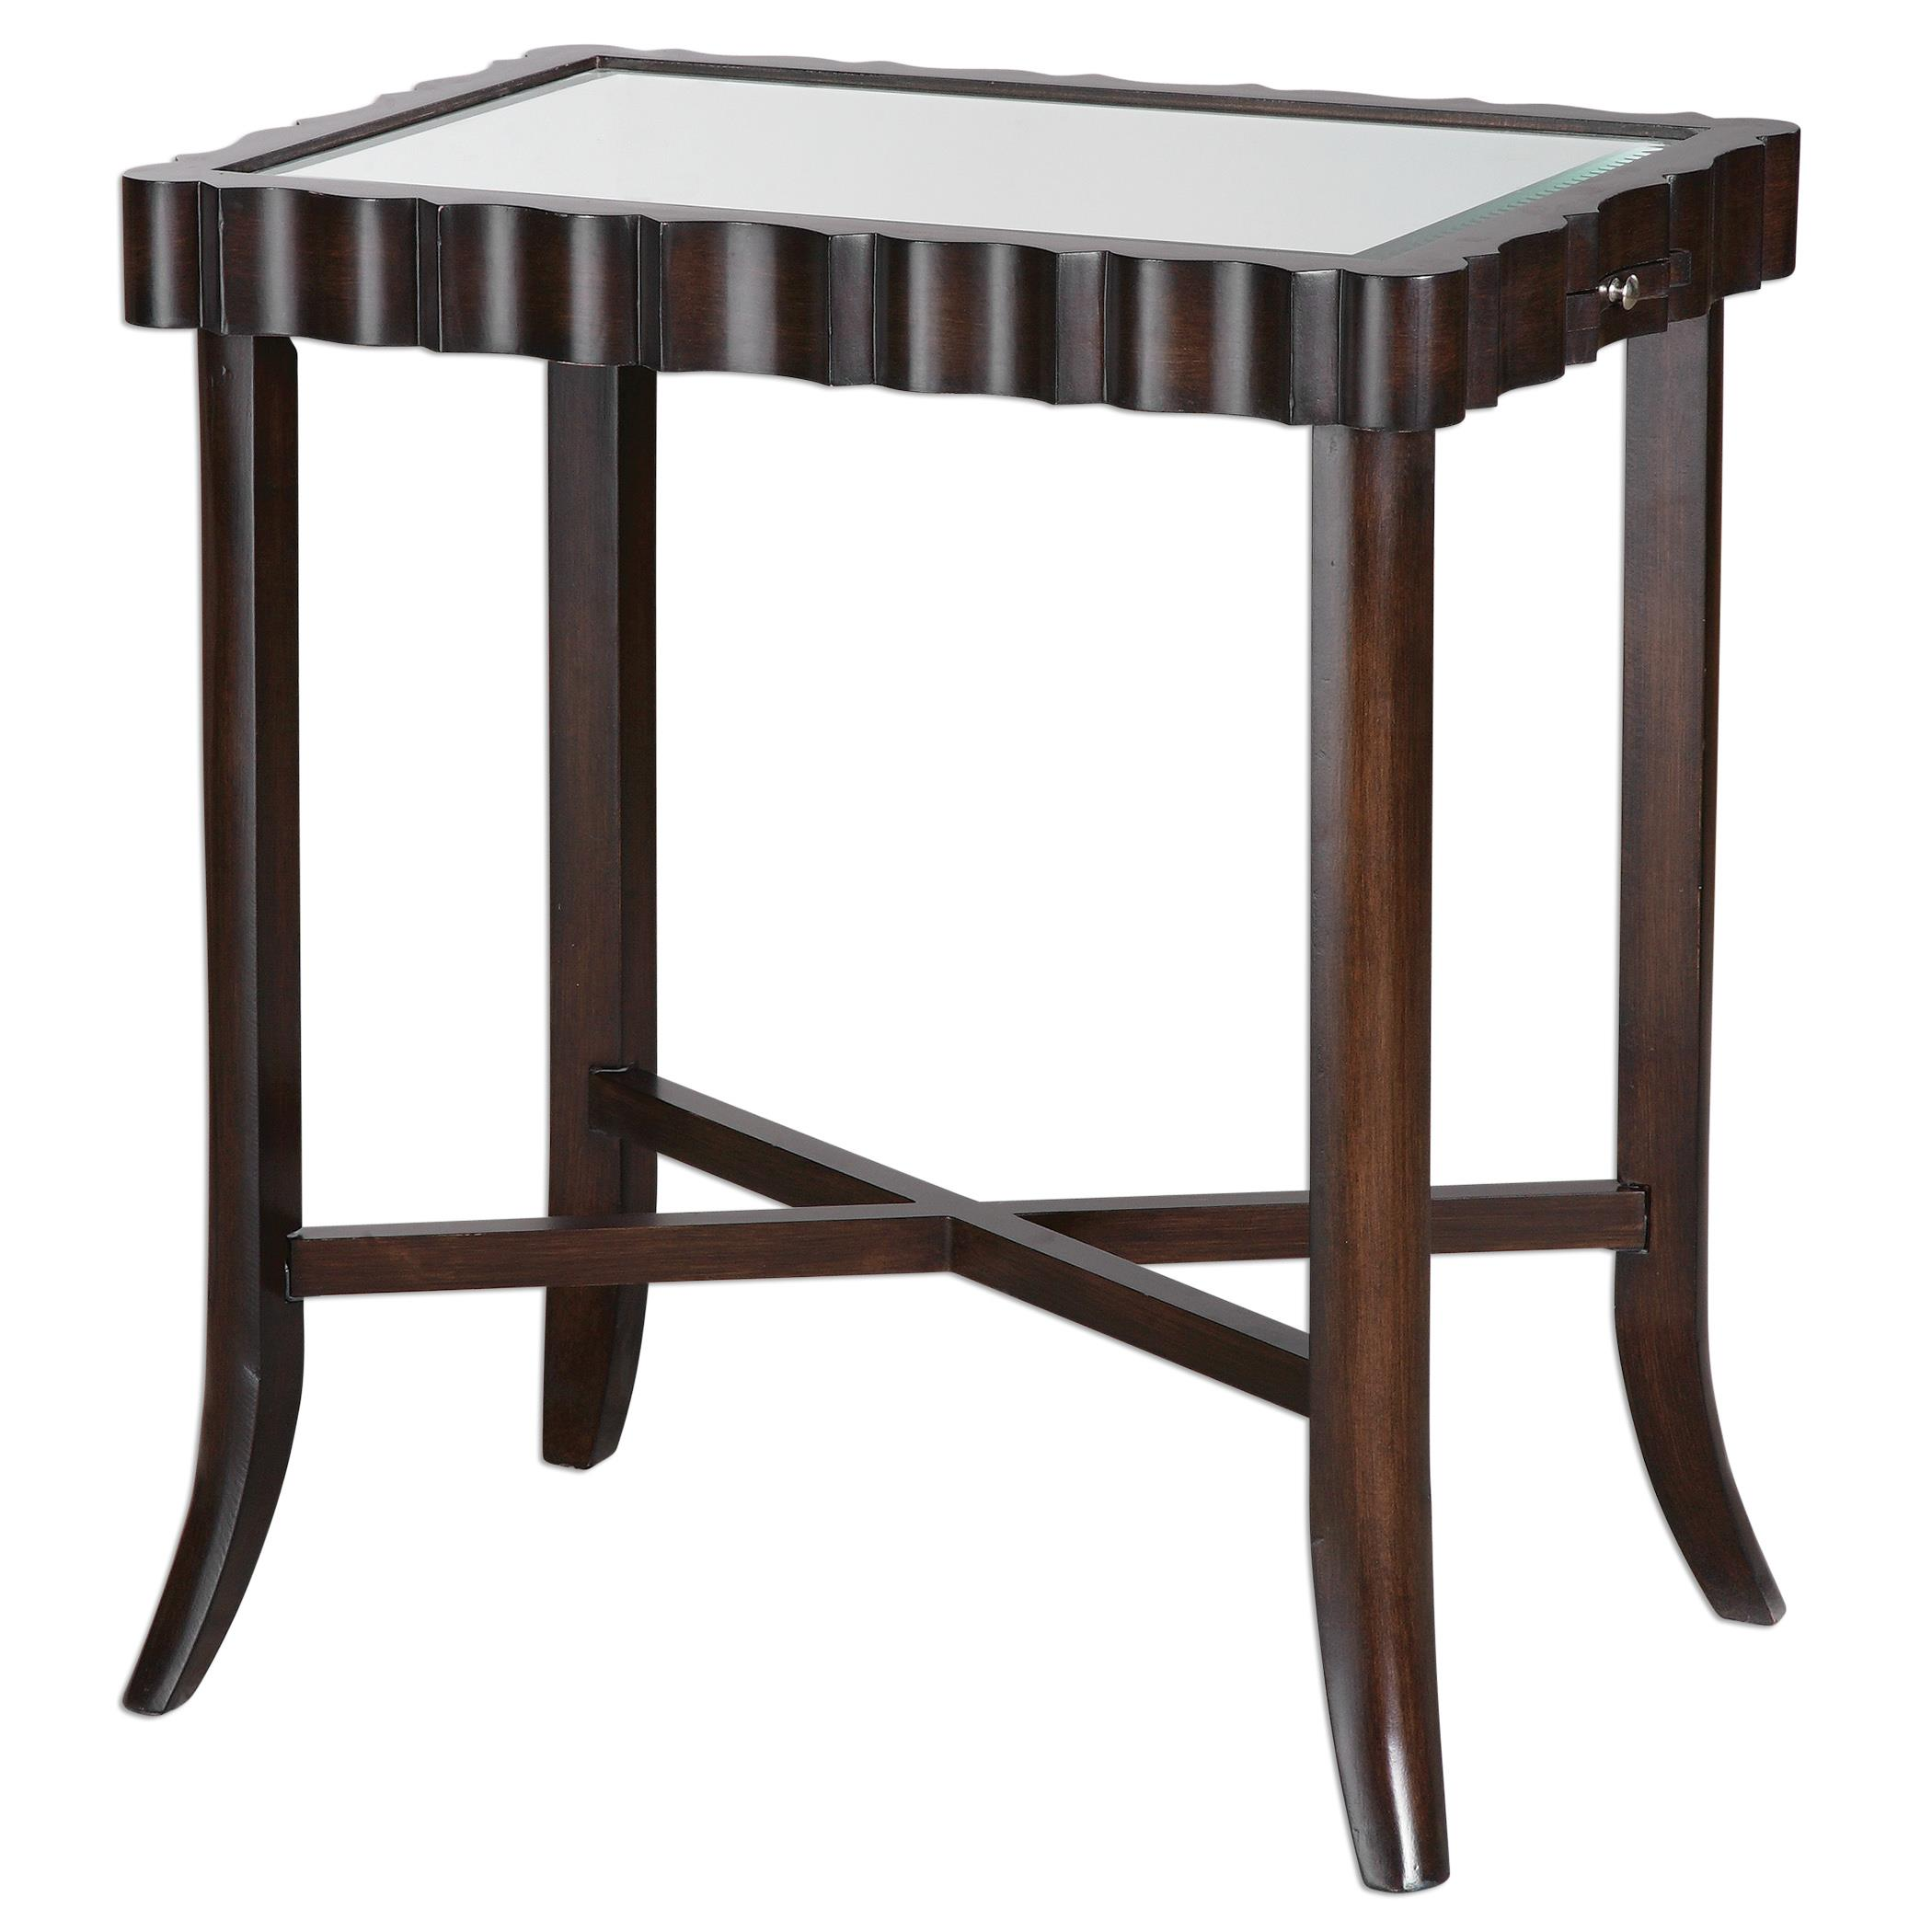 Uttermost Accent Furniture Karisa Dark Walnut Accent Table - Item Number: 24524